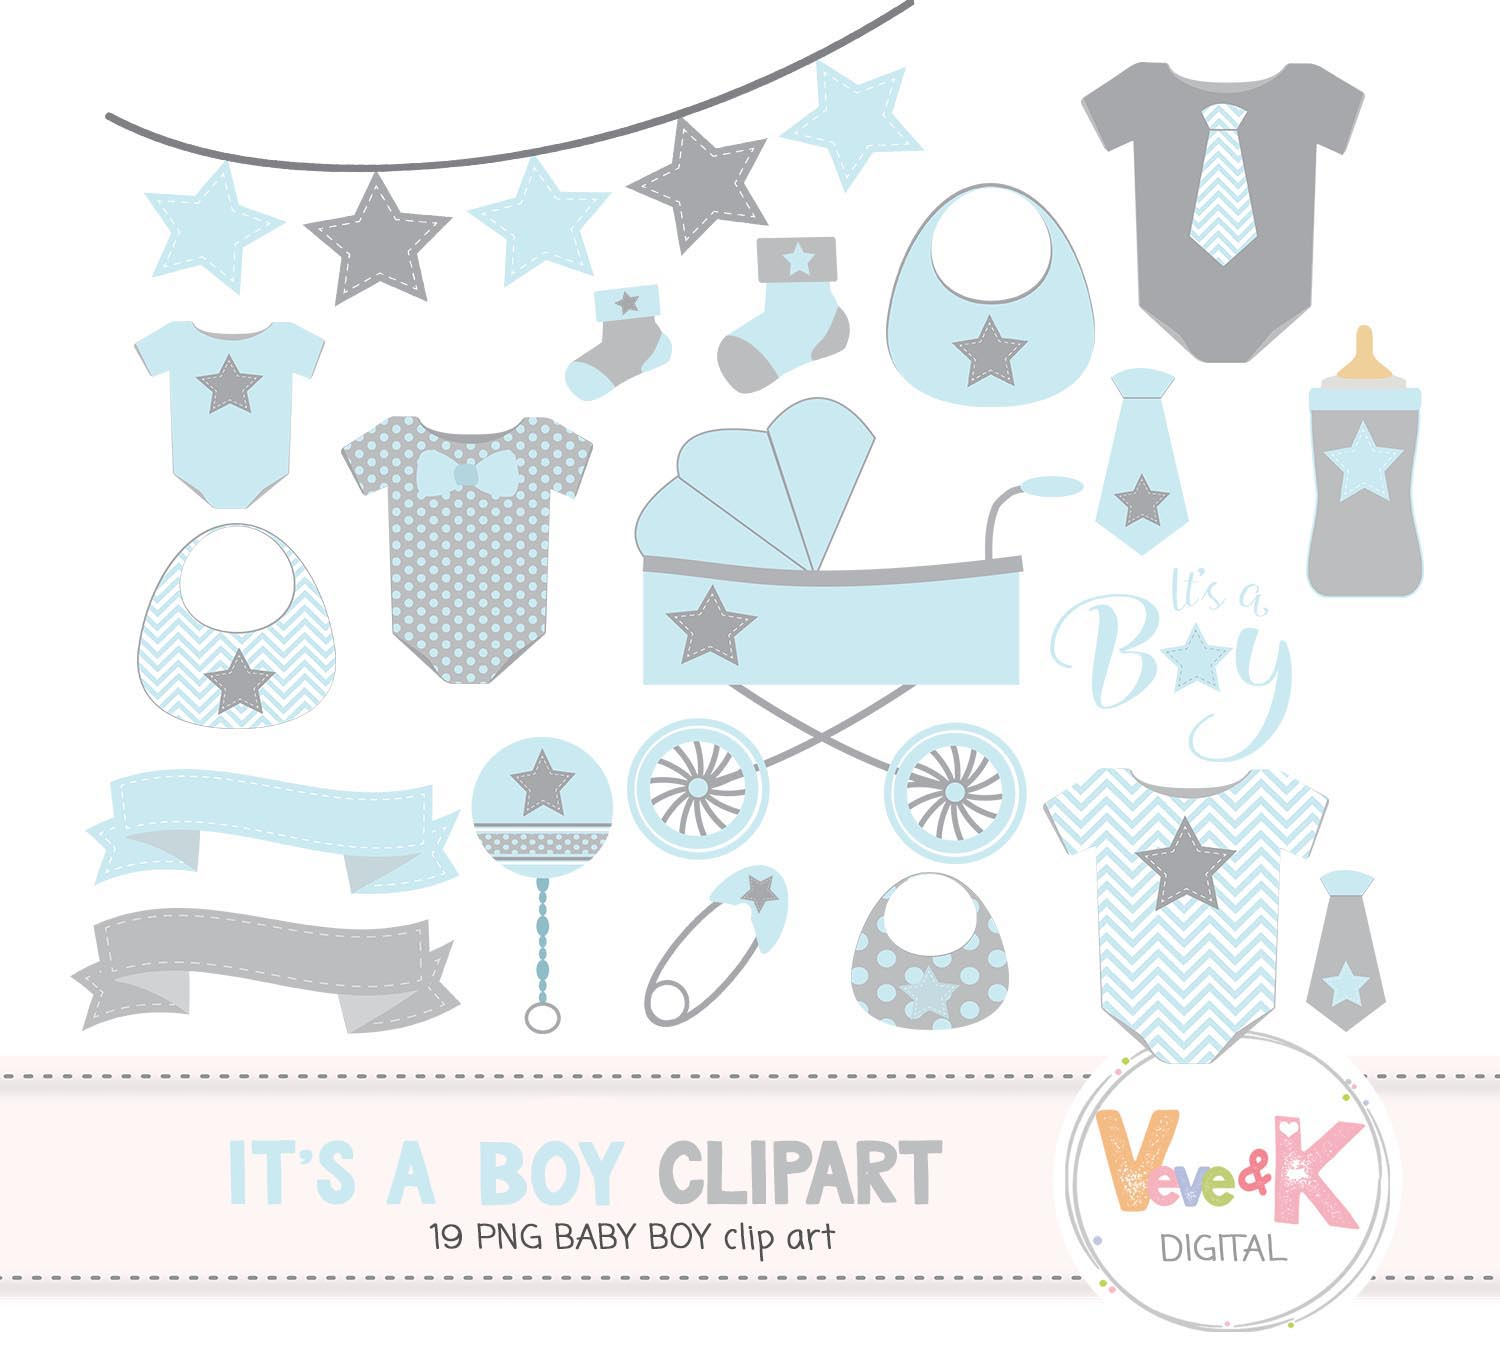 Baby Clip Art, Baby Boy Clipart, Baby Boyl Baby Shower DIY, It's a Boy, Blue and Gray Baby Shower, Baby Shower Clipart example image 2